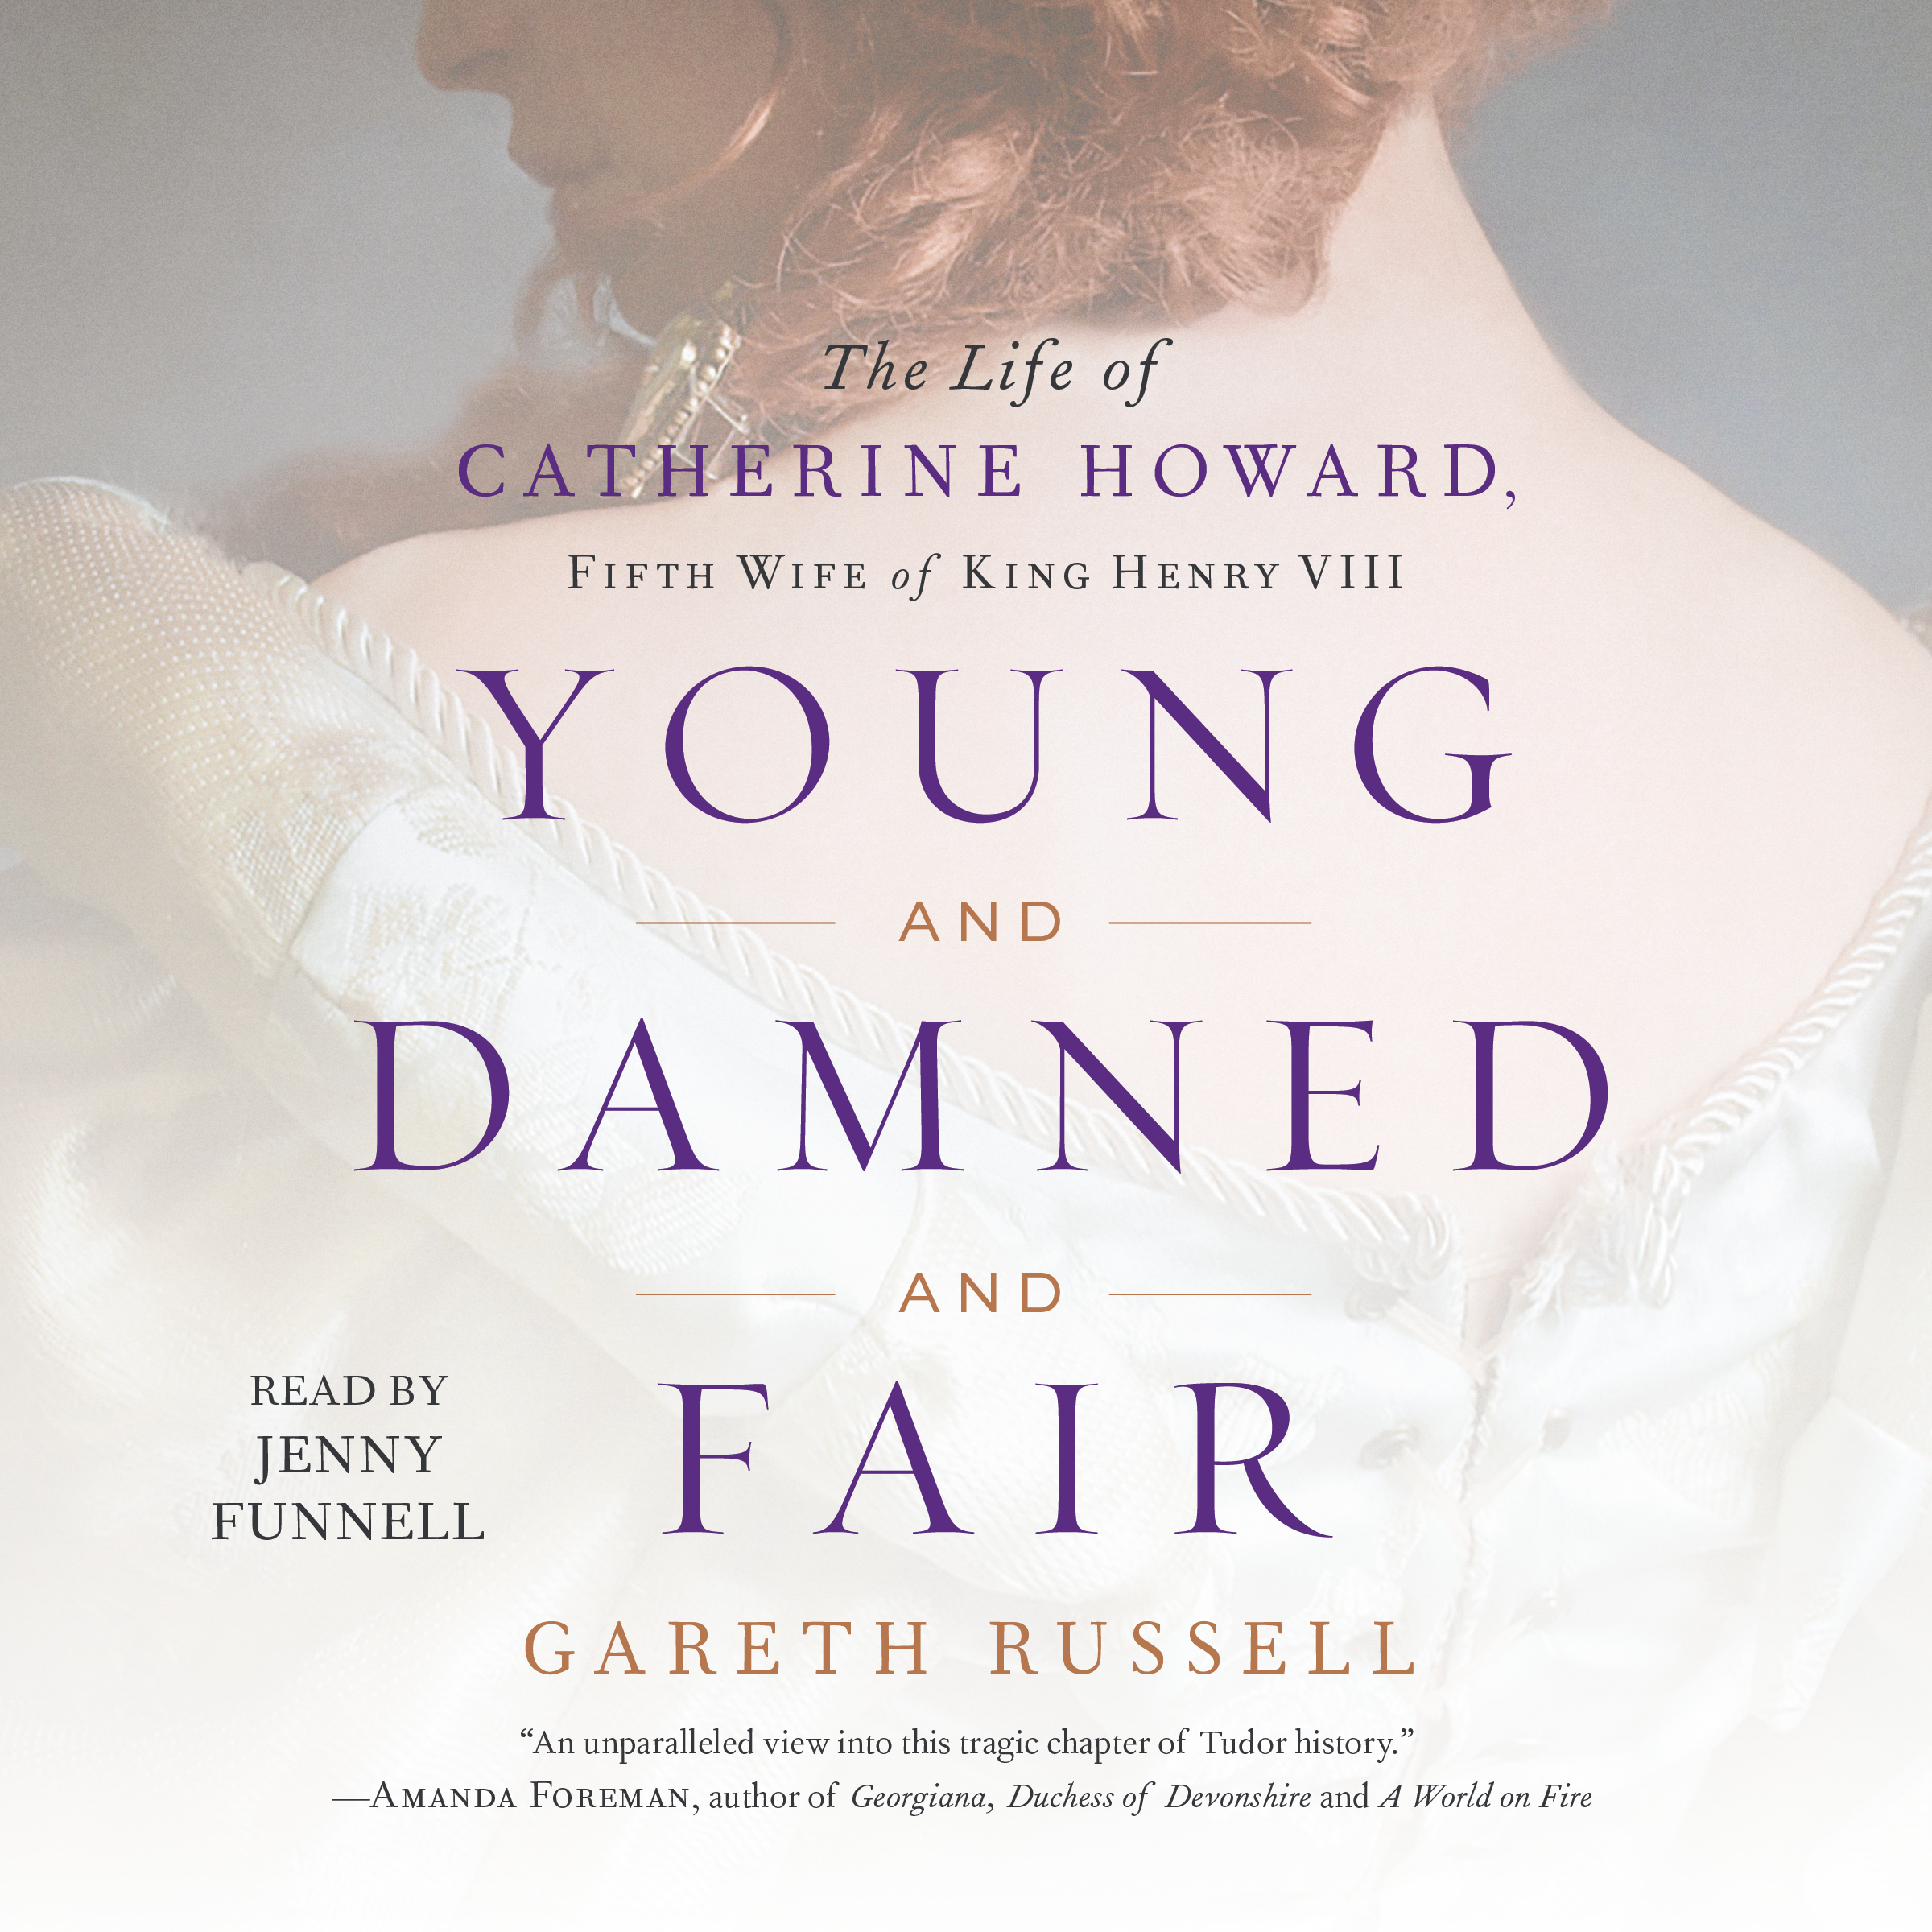 Young and damned and fair 9781508227380 hr